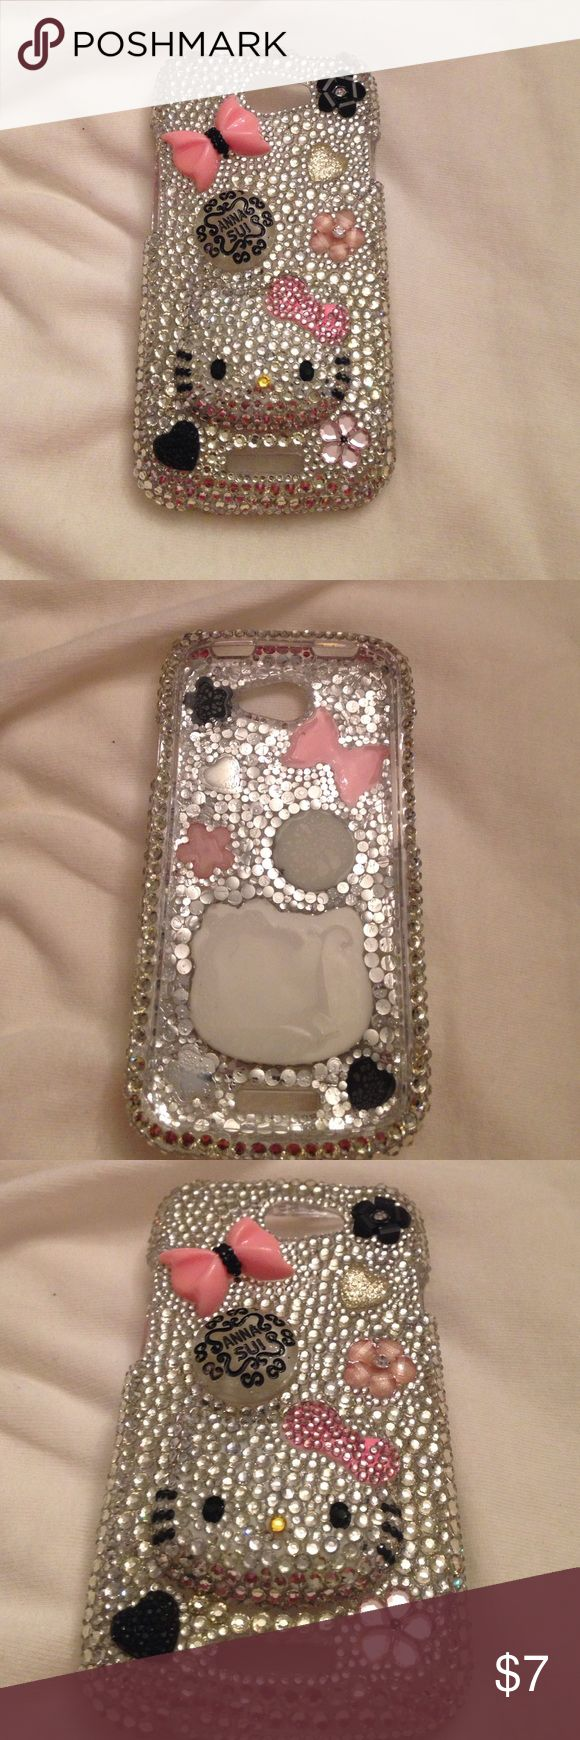 HTC one S cellphone case HTC one S cellphone case hello kitty HTC one S Accessories Phone Cases